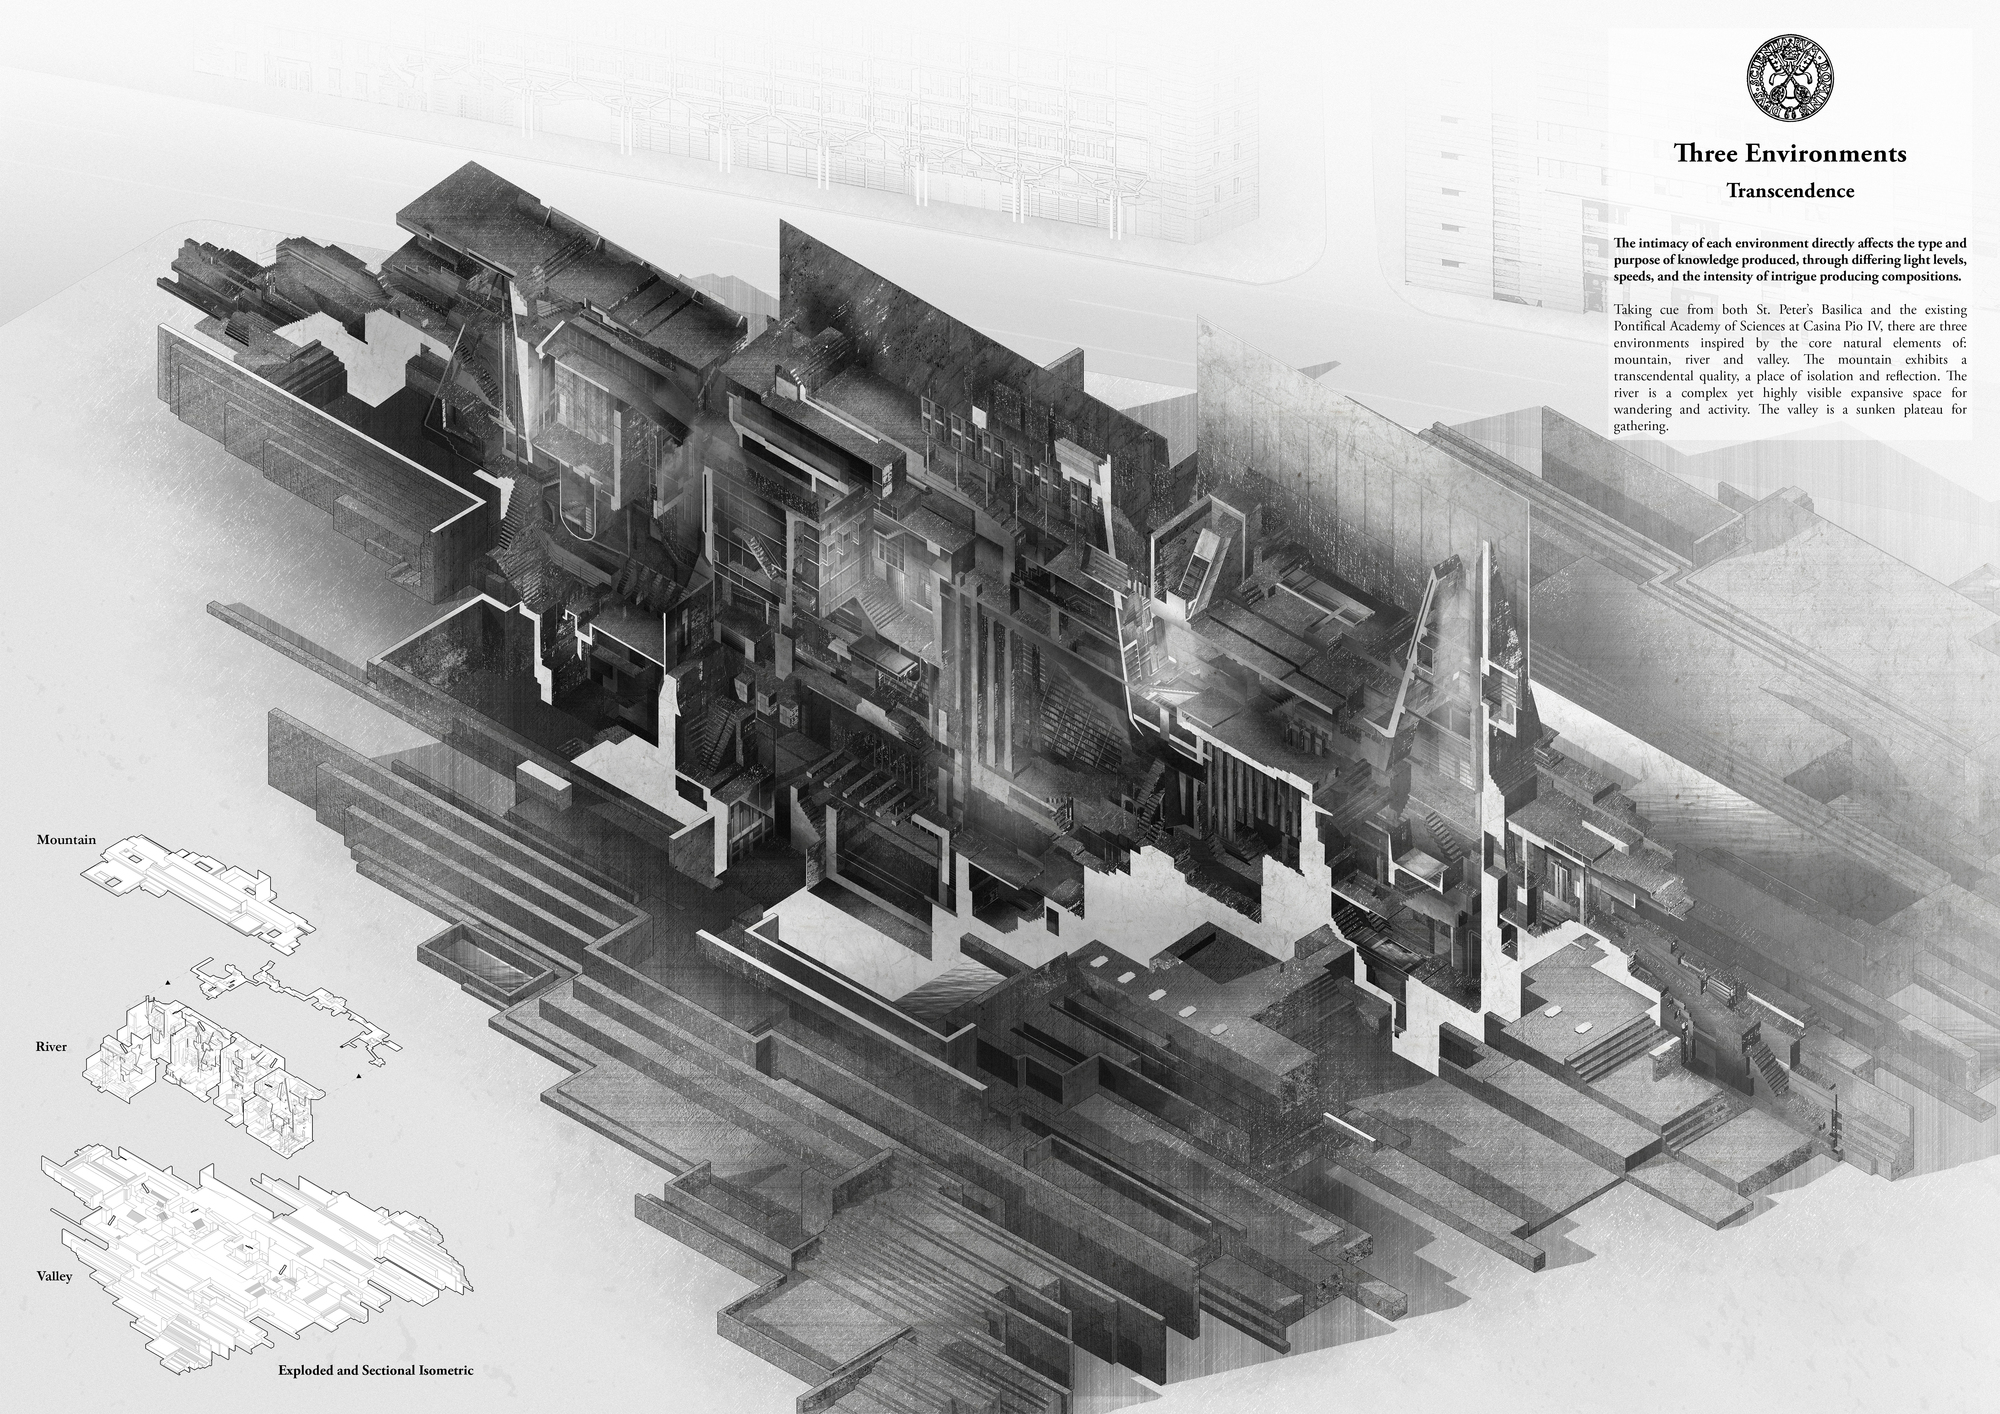 bartlett school of architecture thesis projects Title: bartlett phd research projects 2018, author: the bartlett school of architecture ucl, name: bartlett phd research projects 2018, length: 84 pages, page: 1, published: 2018-03-05 phd research projects 2018 was the twelfth annual conference and exhibition of doctoral research at the bartlett school of architecture the.